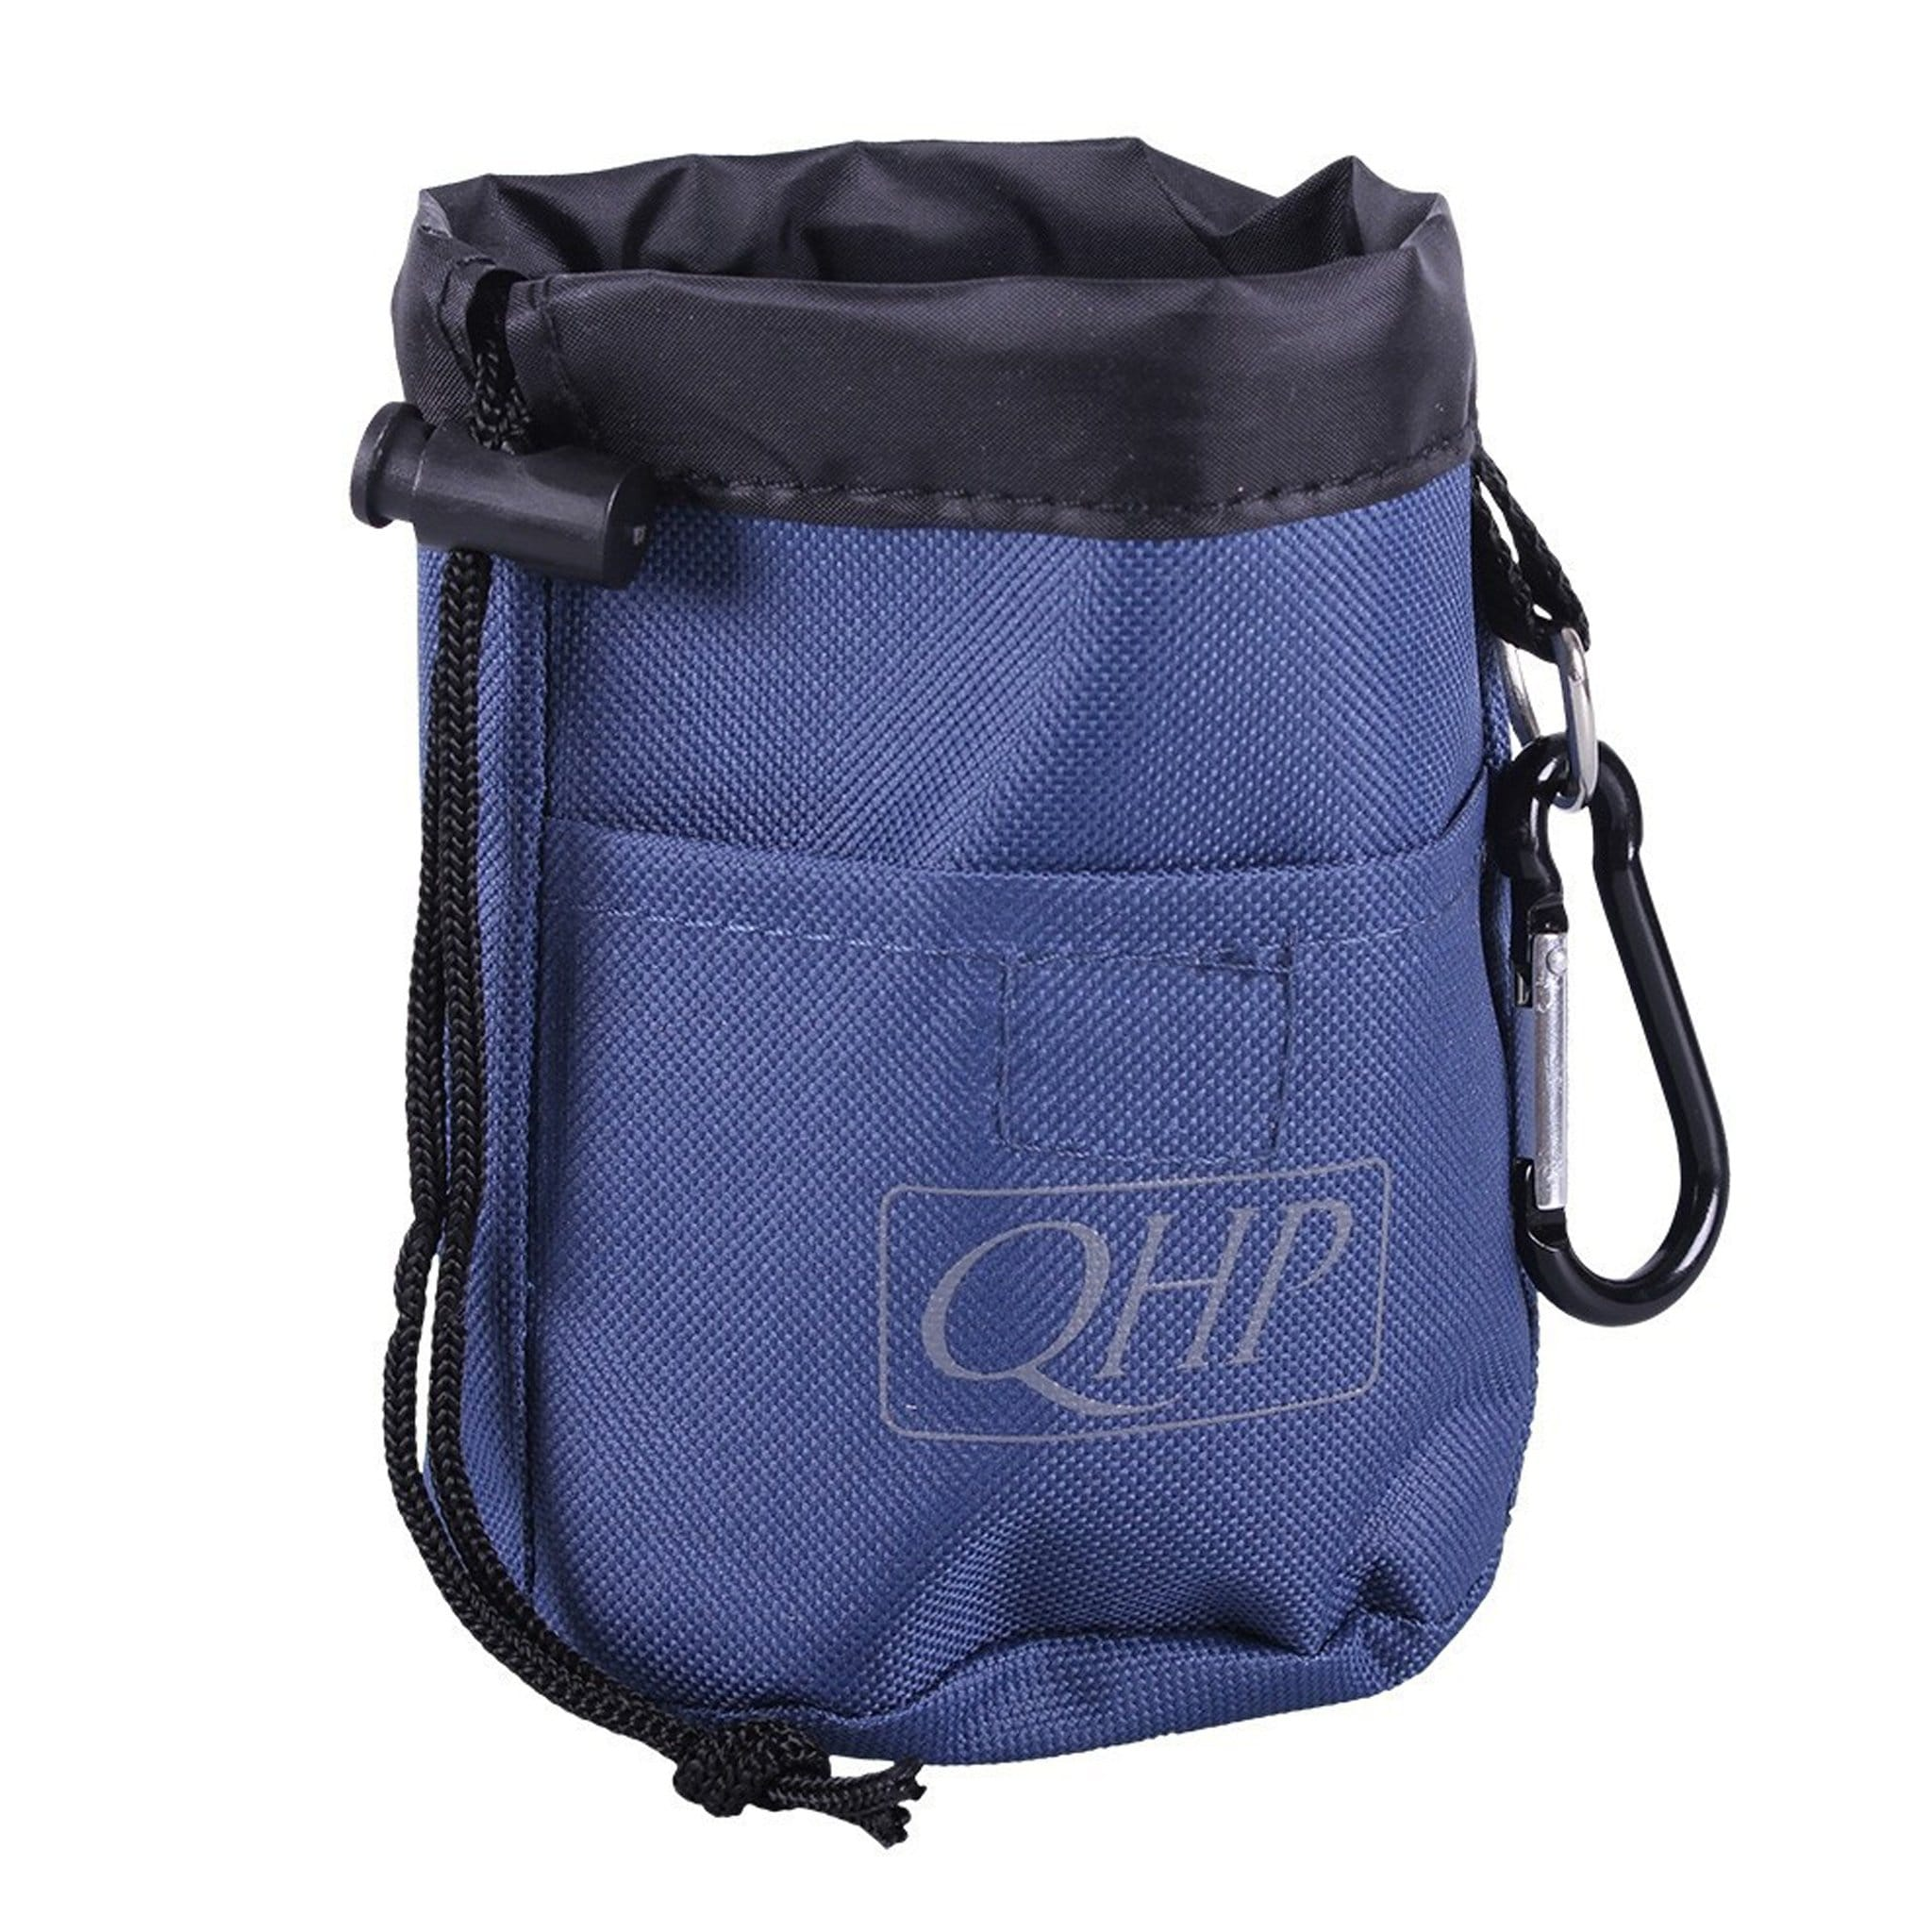 QHP Treat Bag 5260 Navy and Grey Front